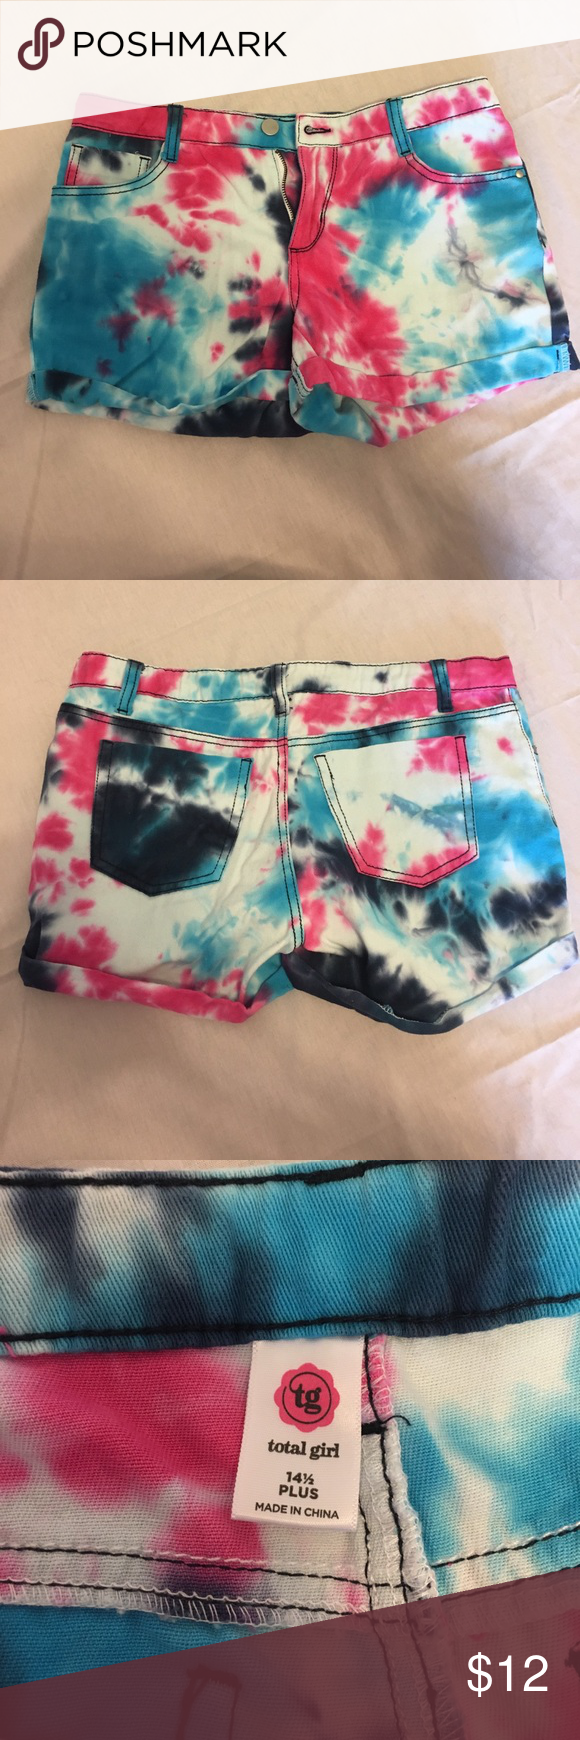 Tie dye shorts Tie dye shorts. Girls size 14.5 Bottoms Shorts